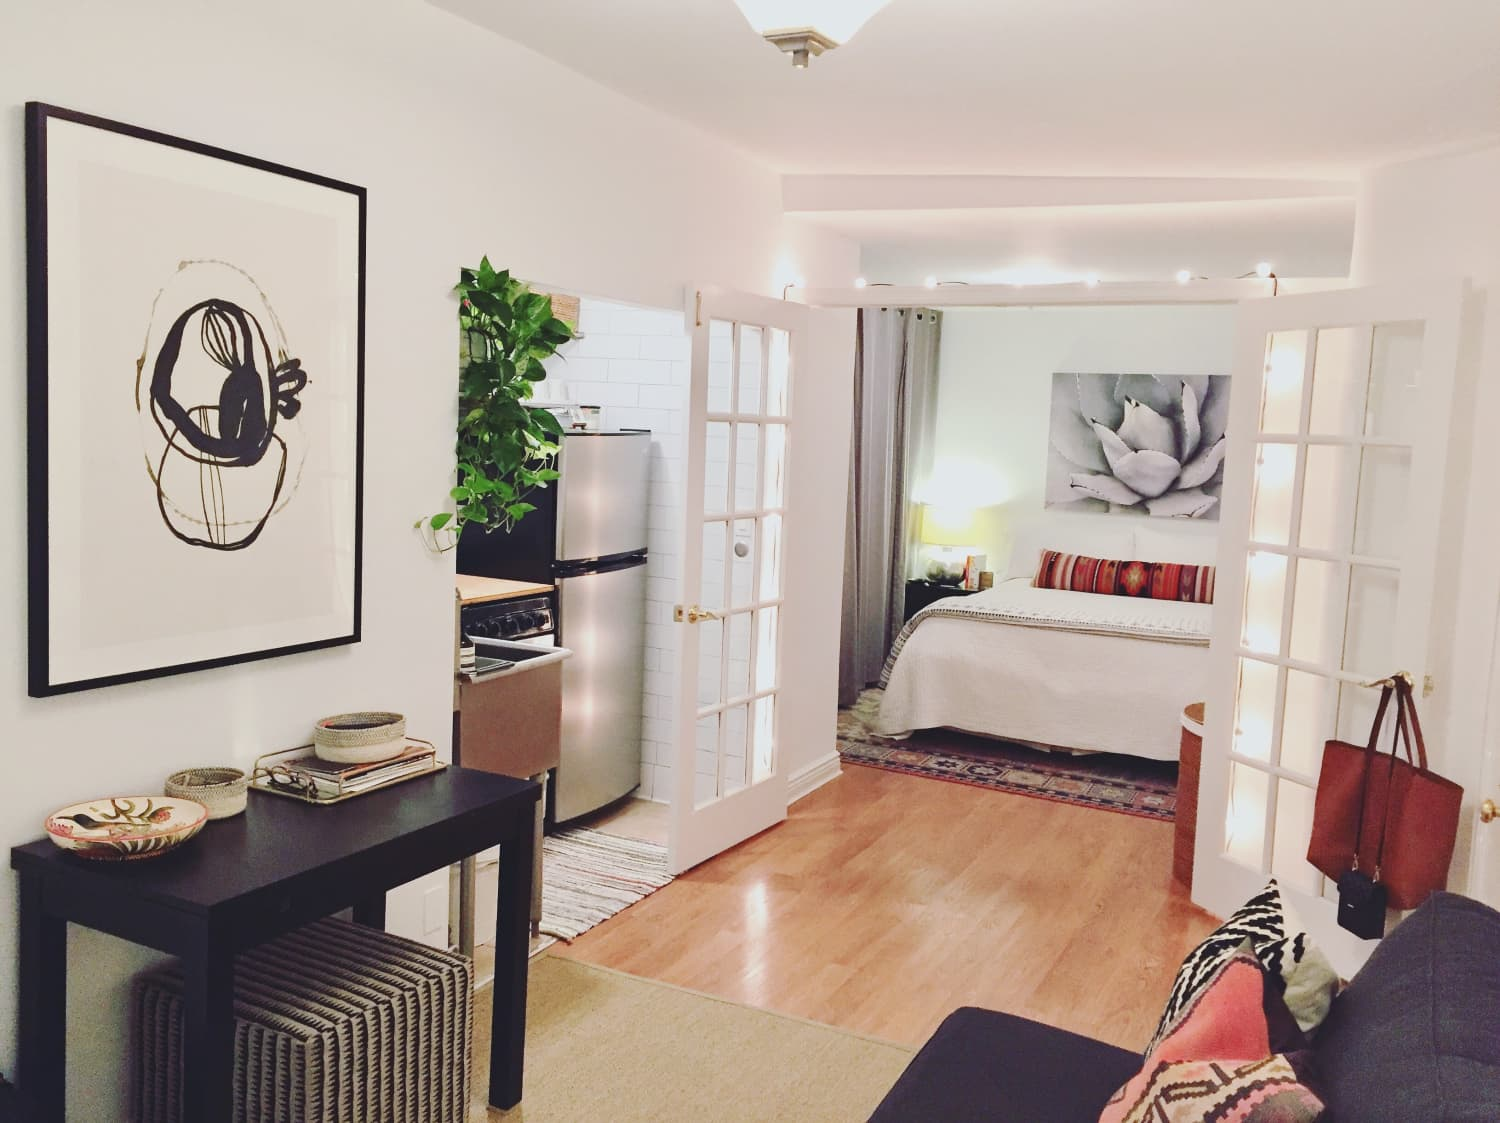 A 250-Square-Foot NYC Studio Is Tiny, but Tidy